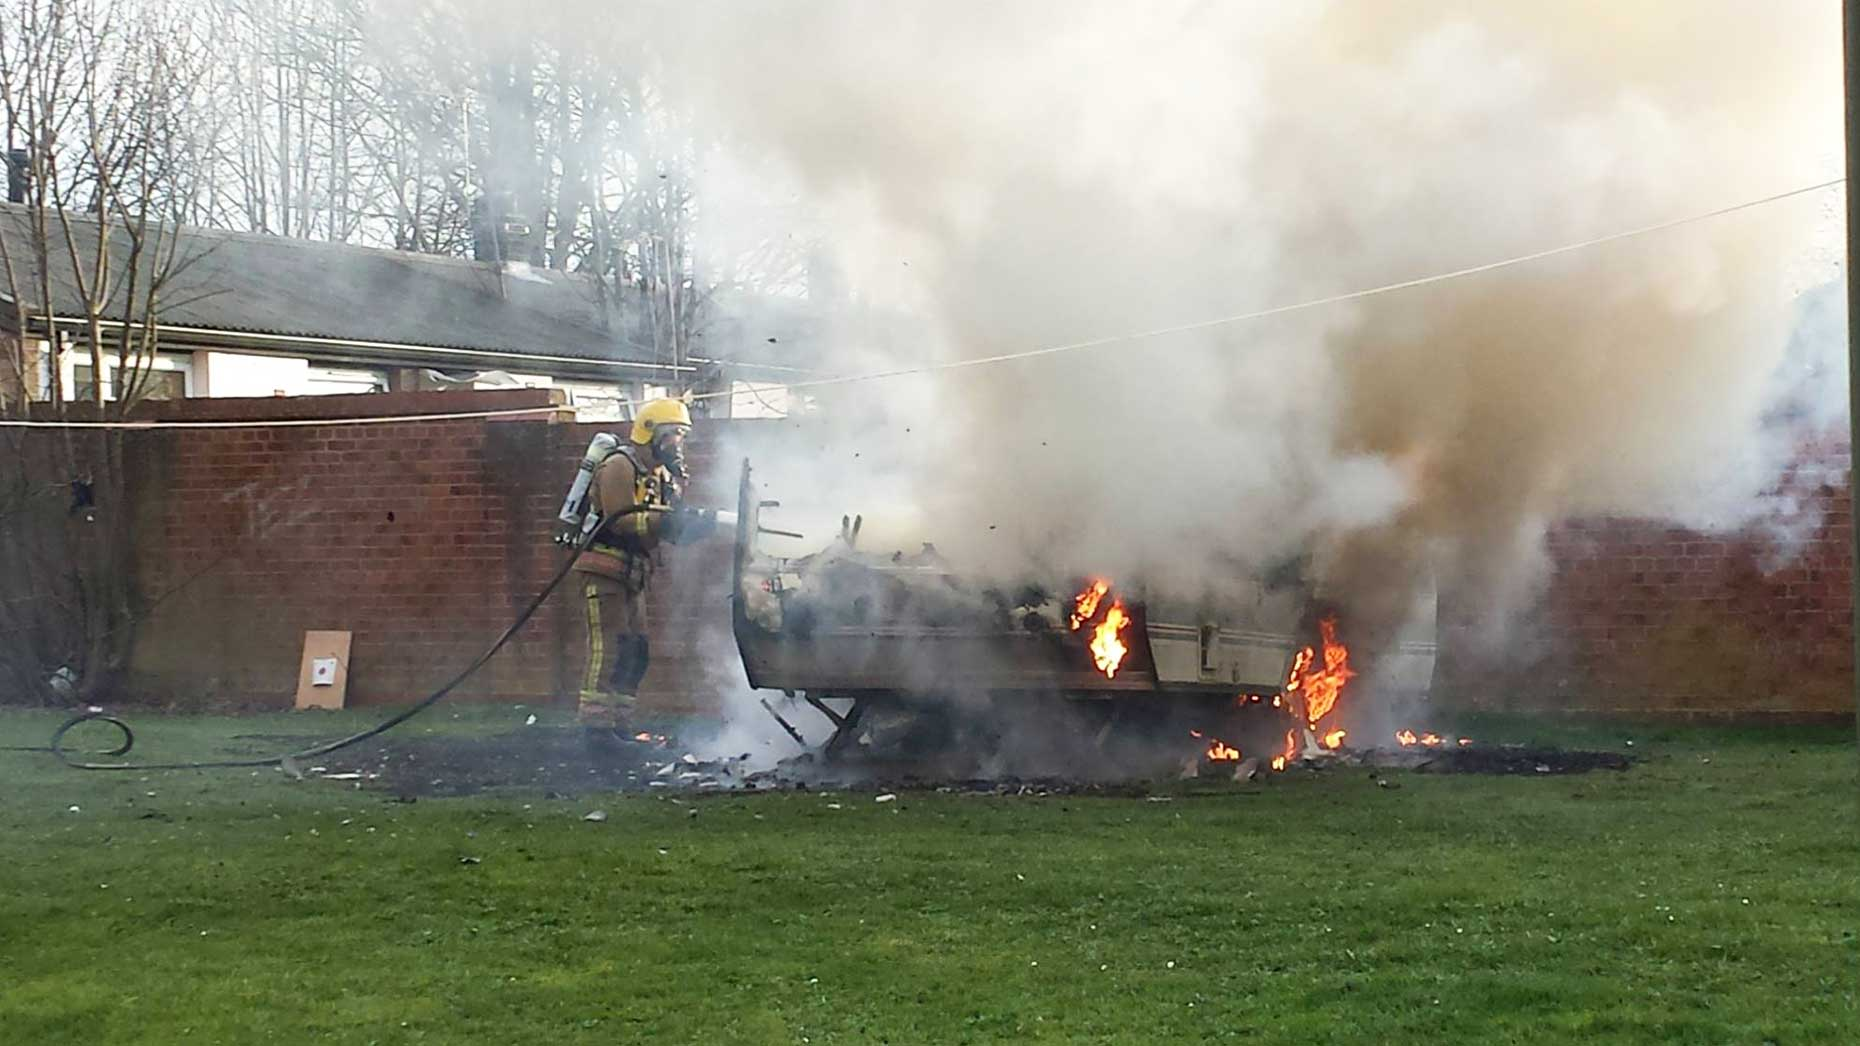 Two crews from Lincoln North and South attended the blaze. Photo: Nigel Mulhall